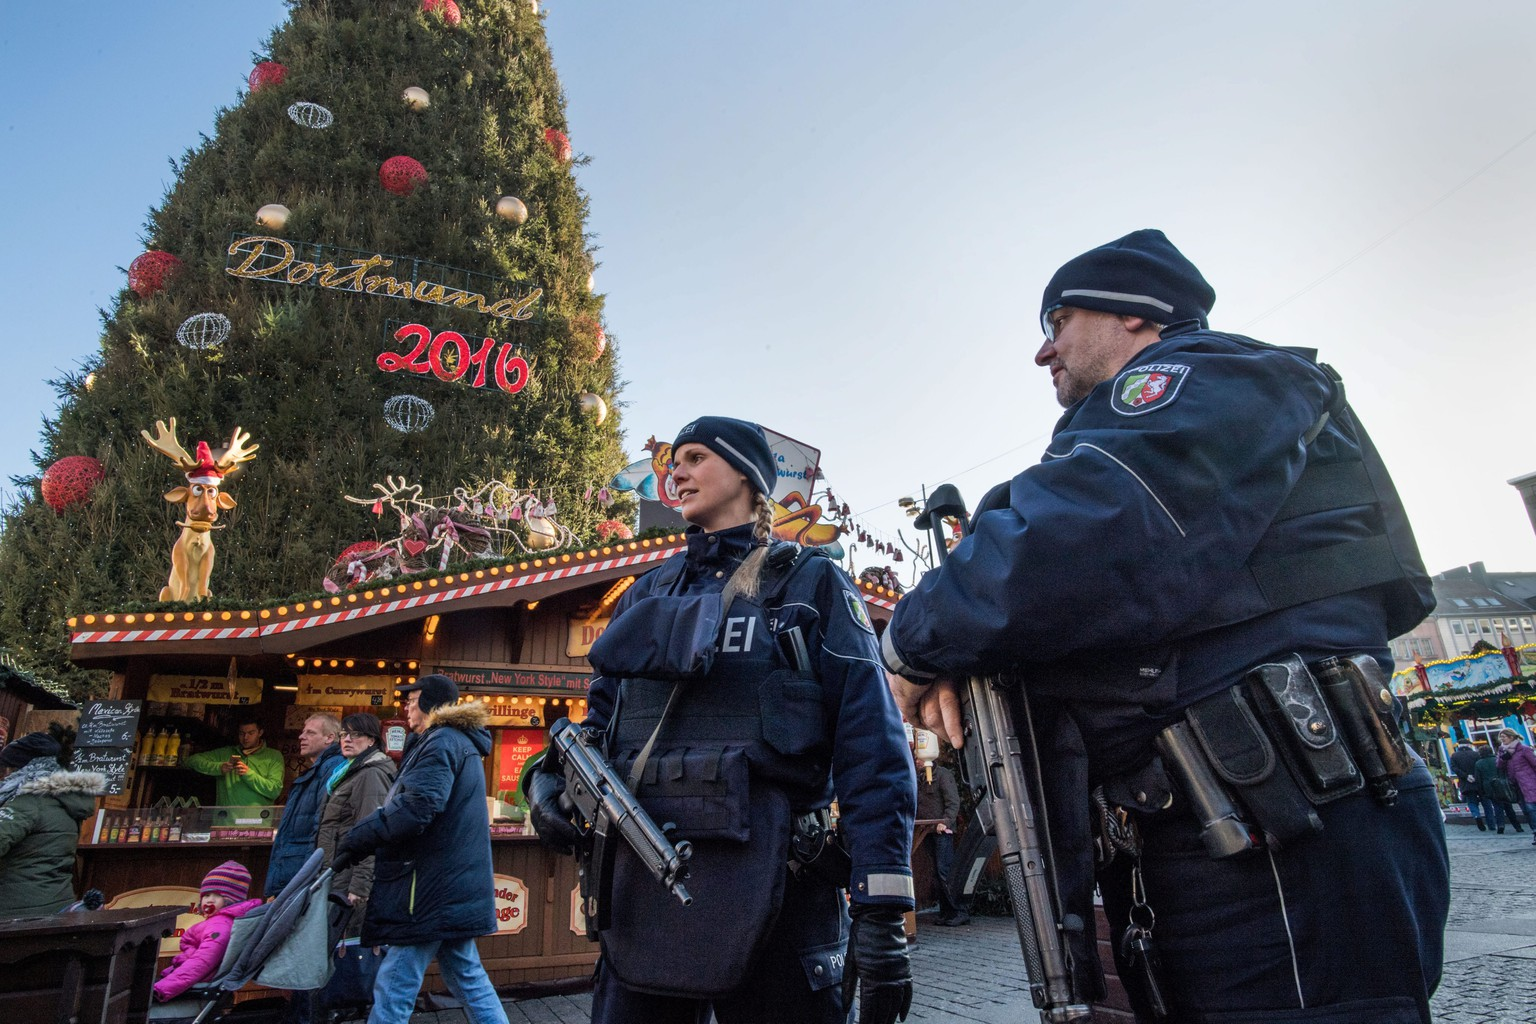 epa05683252 Police officers patrol the Christmas market in Dortmund, Germany, 20 December 2016. Police are stepping up security measures at markets across Germany after 12 people were killed and at least 48 injured when a truck ploughed into a busy Christmas market in Berlin, 19 December. Authorities are investigating the incident as a 'possible terrorist attack'.  EPA/BERND THISSEN